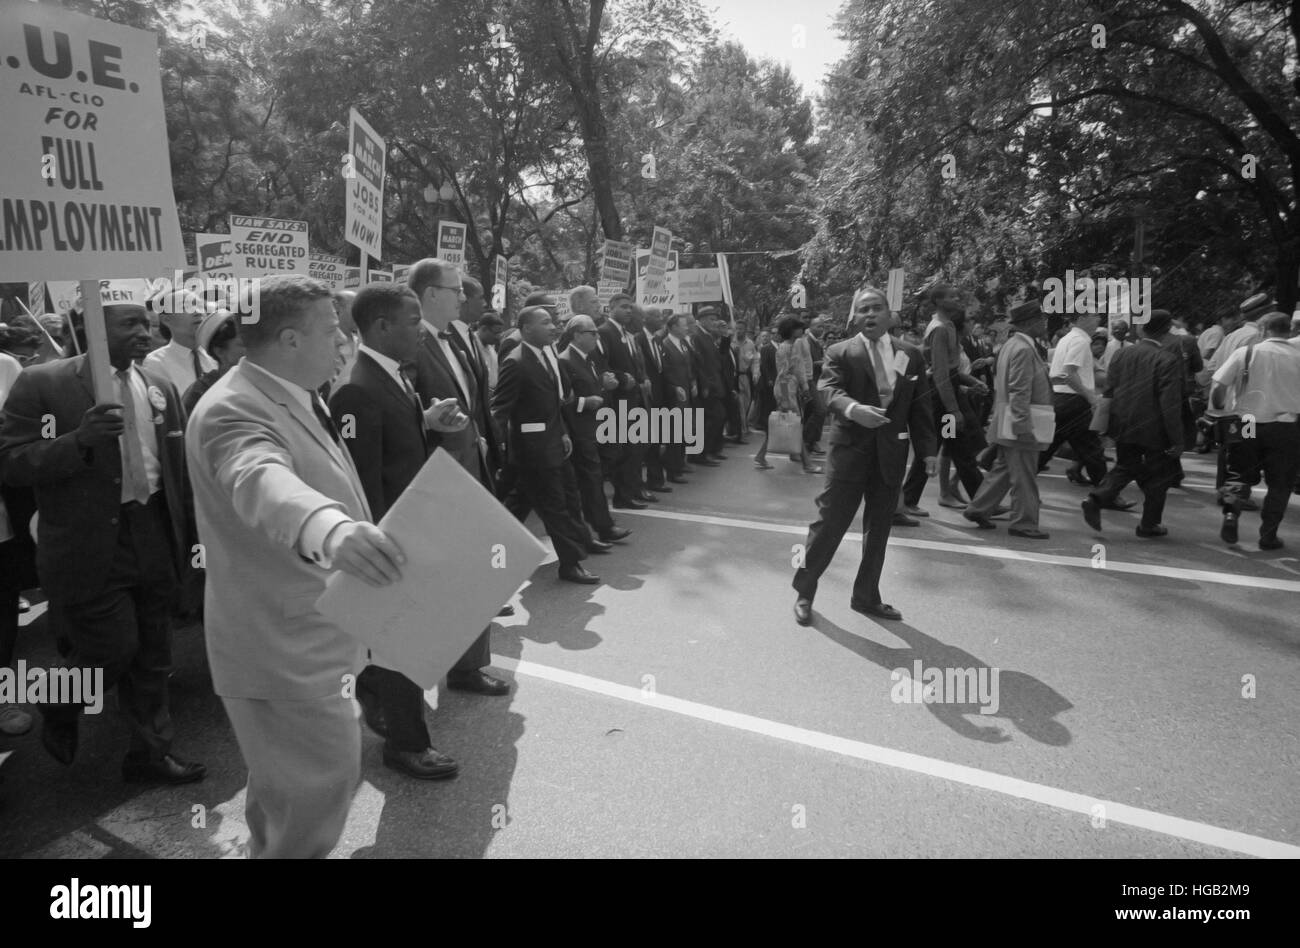 August 28, 1963 - Martin Luther King with leaders at the March on Washington. - Stock Image